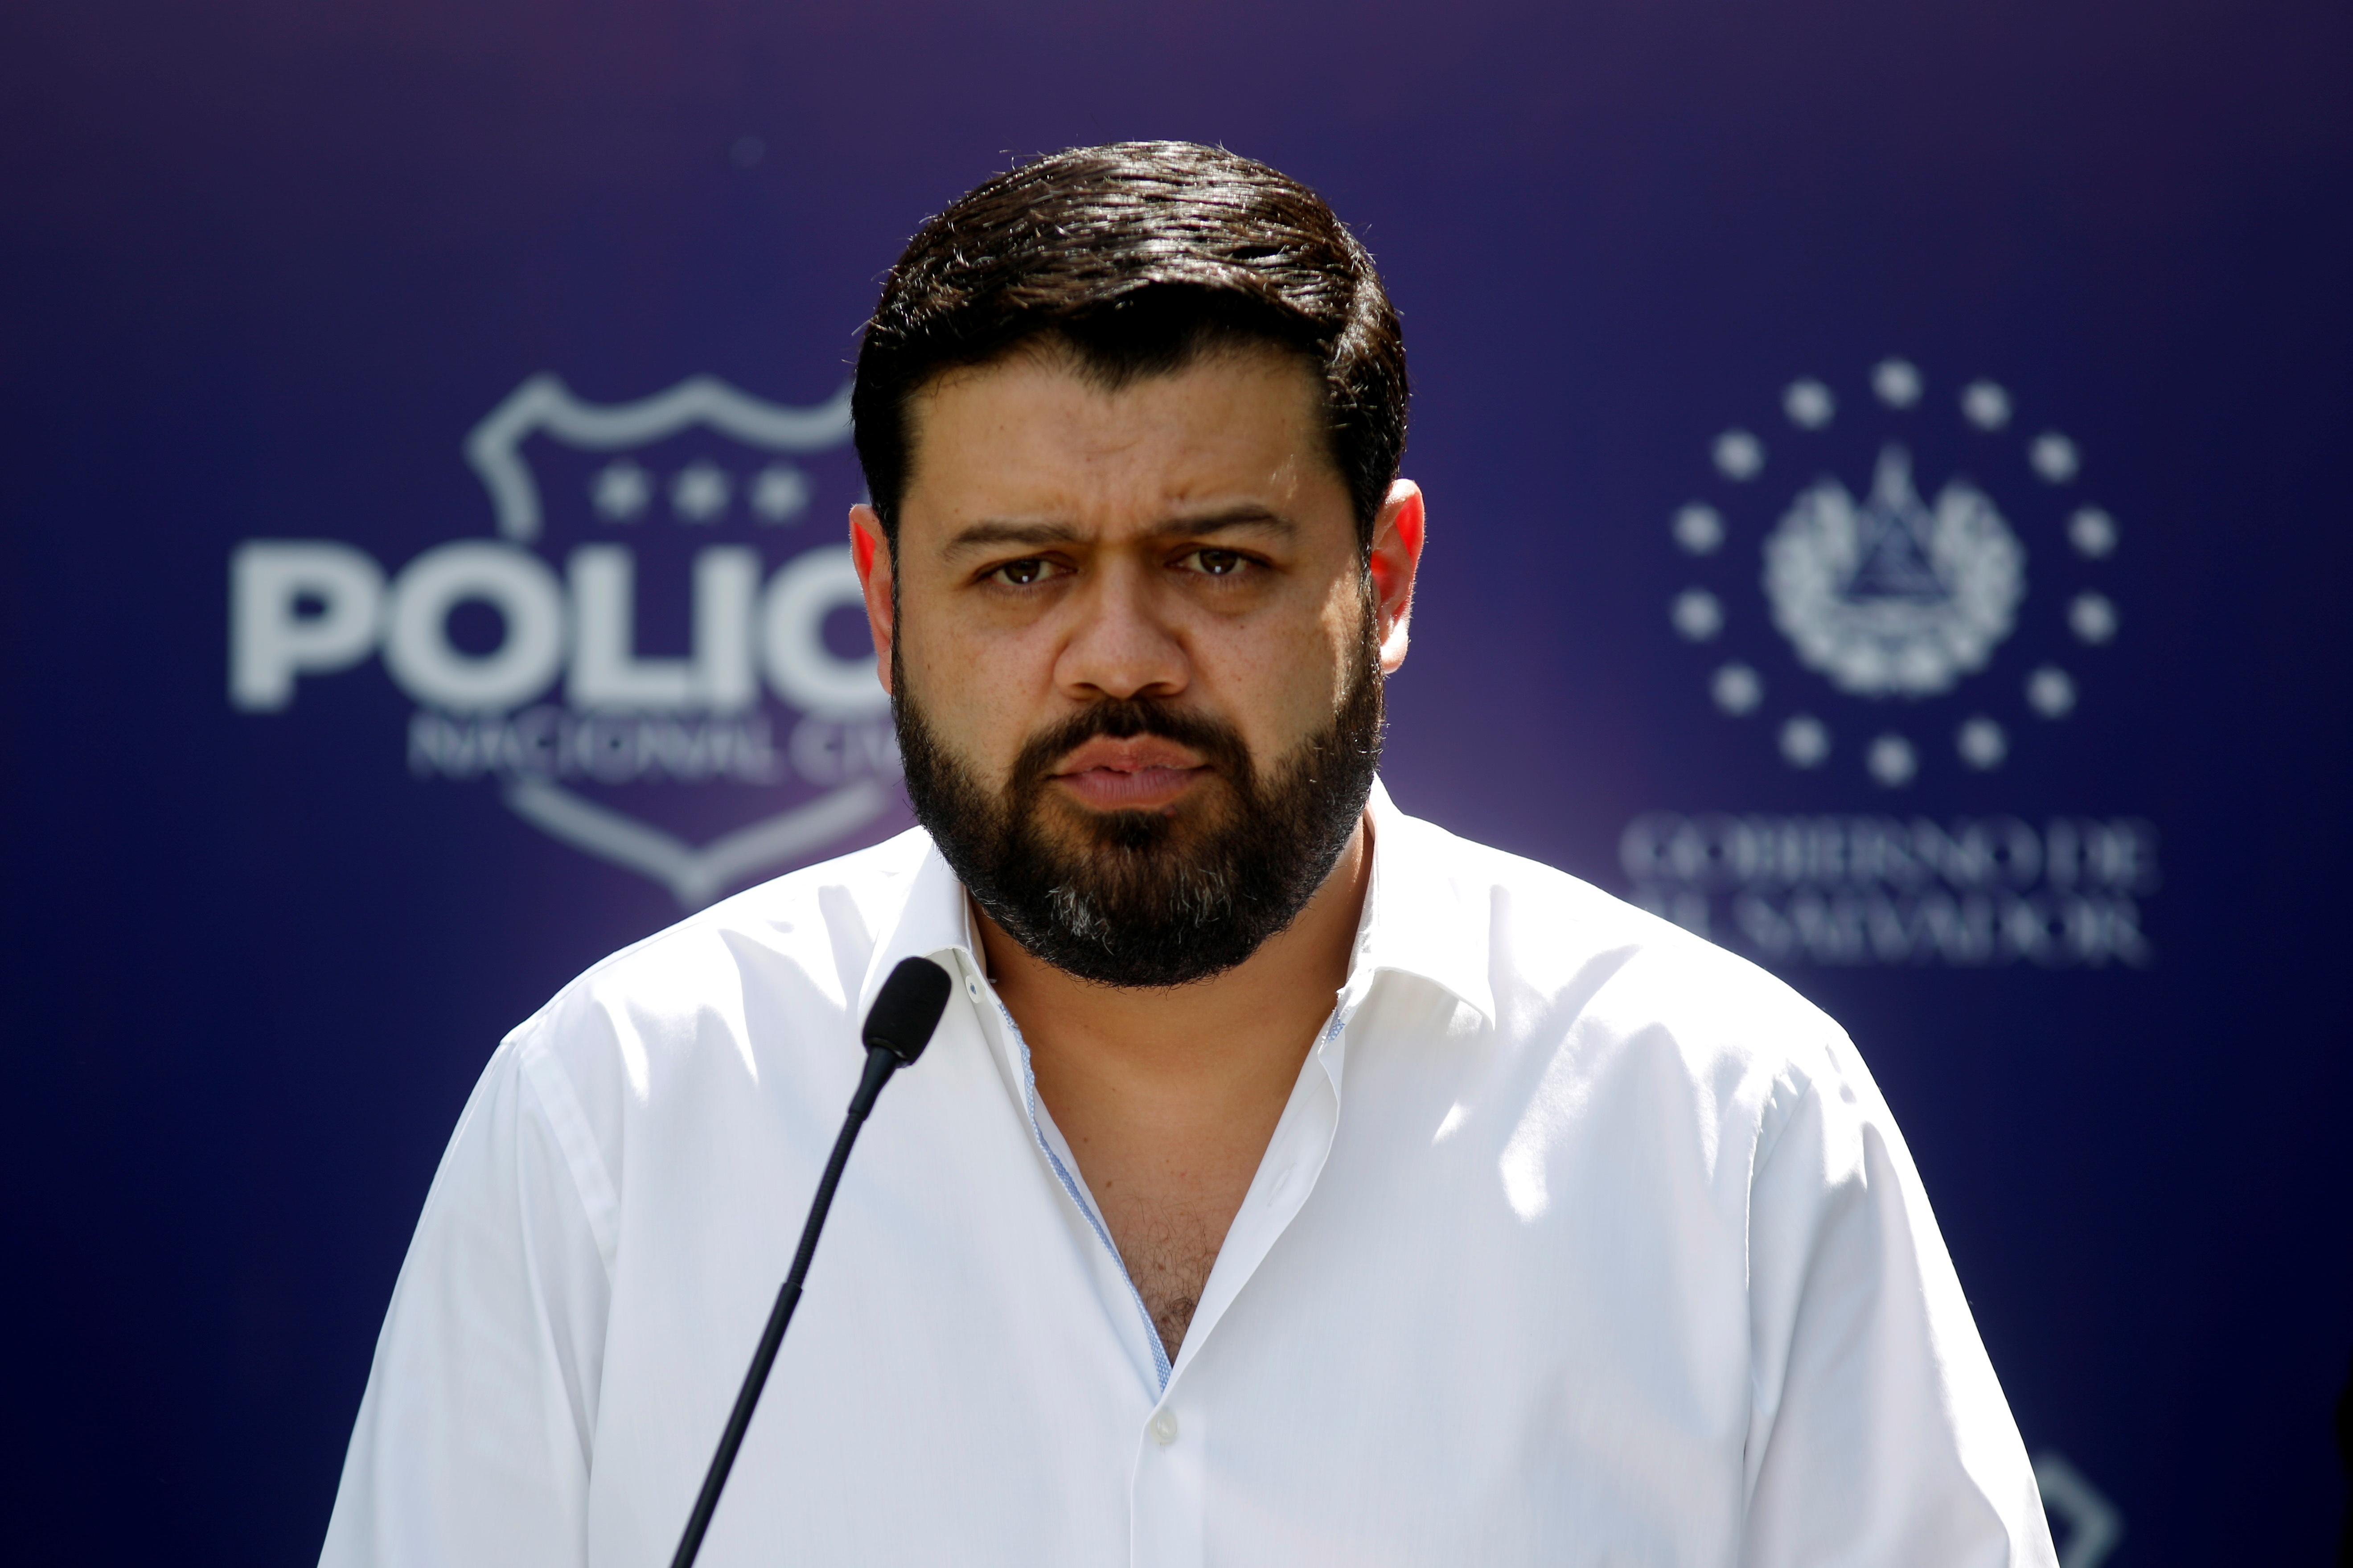 Minister of Justice and Security Rogelio Rivas takes part in a news conference after a drug bust operation in San Luis La Herradura, El Salvador February 11, 2021.   REUTERS/Jose Cabezas